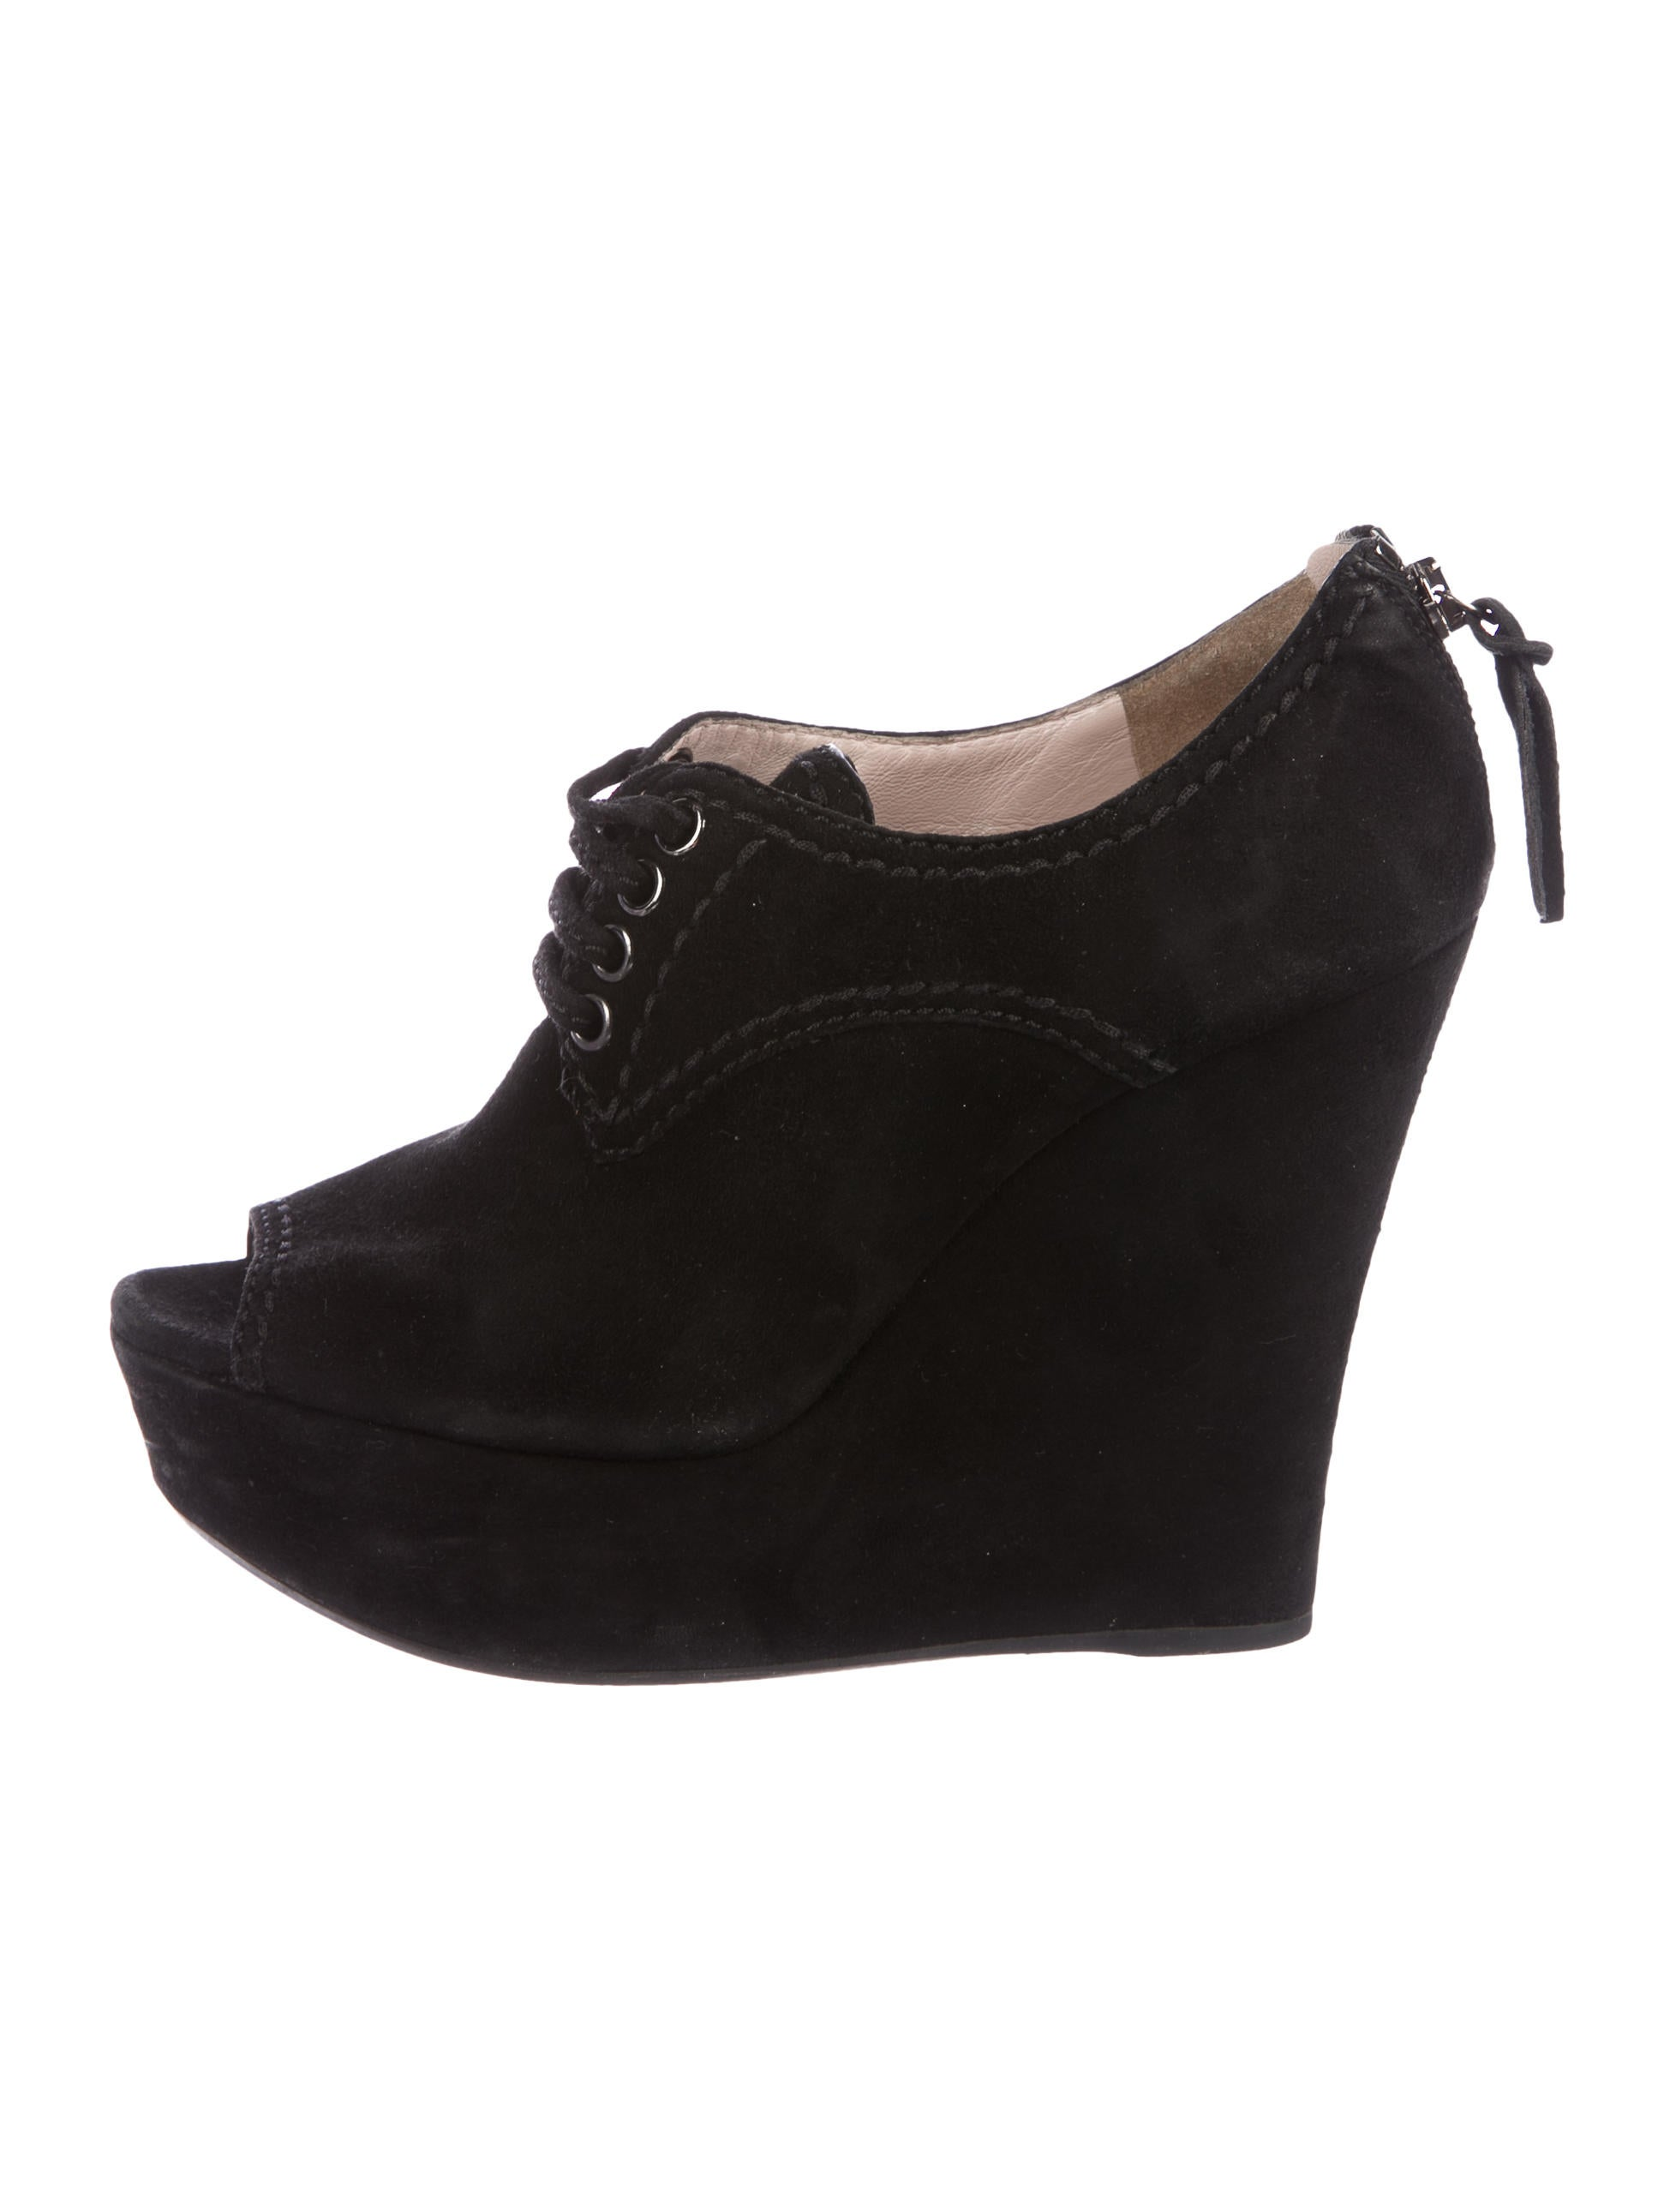 outlet online Miu Miu Lace-Up Wedge Booties cheap factory outlet very cheap for sale s43kFhVcLa